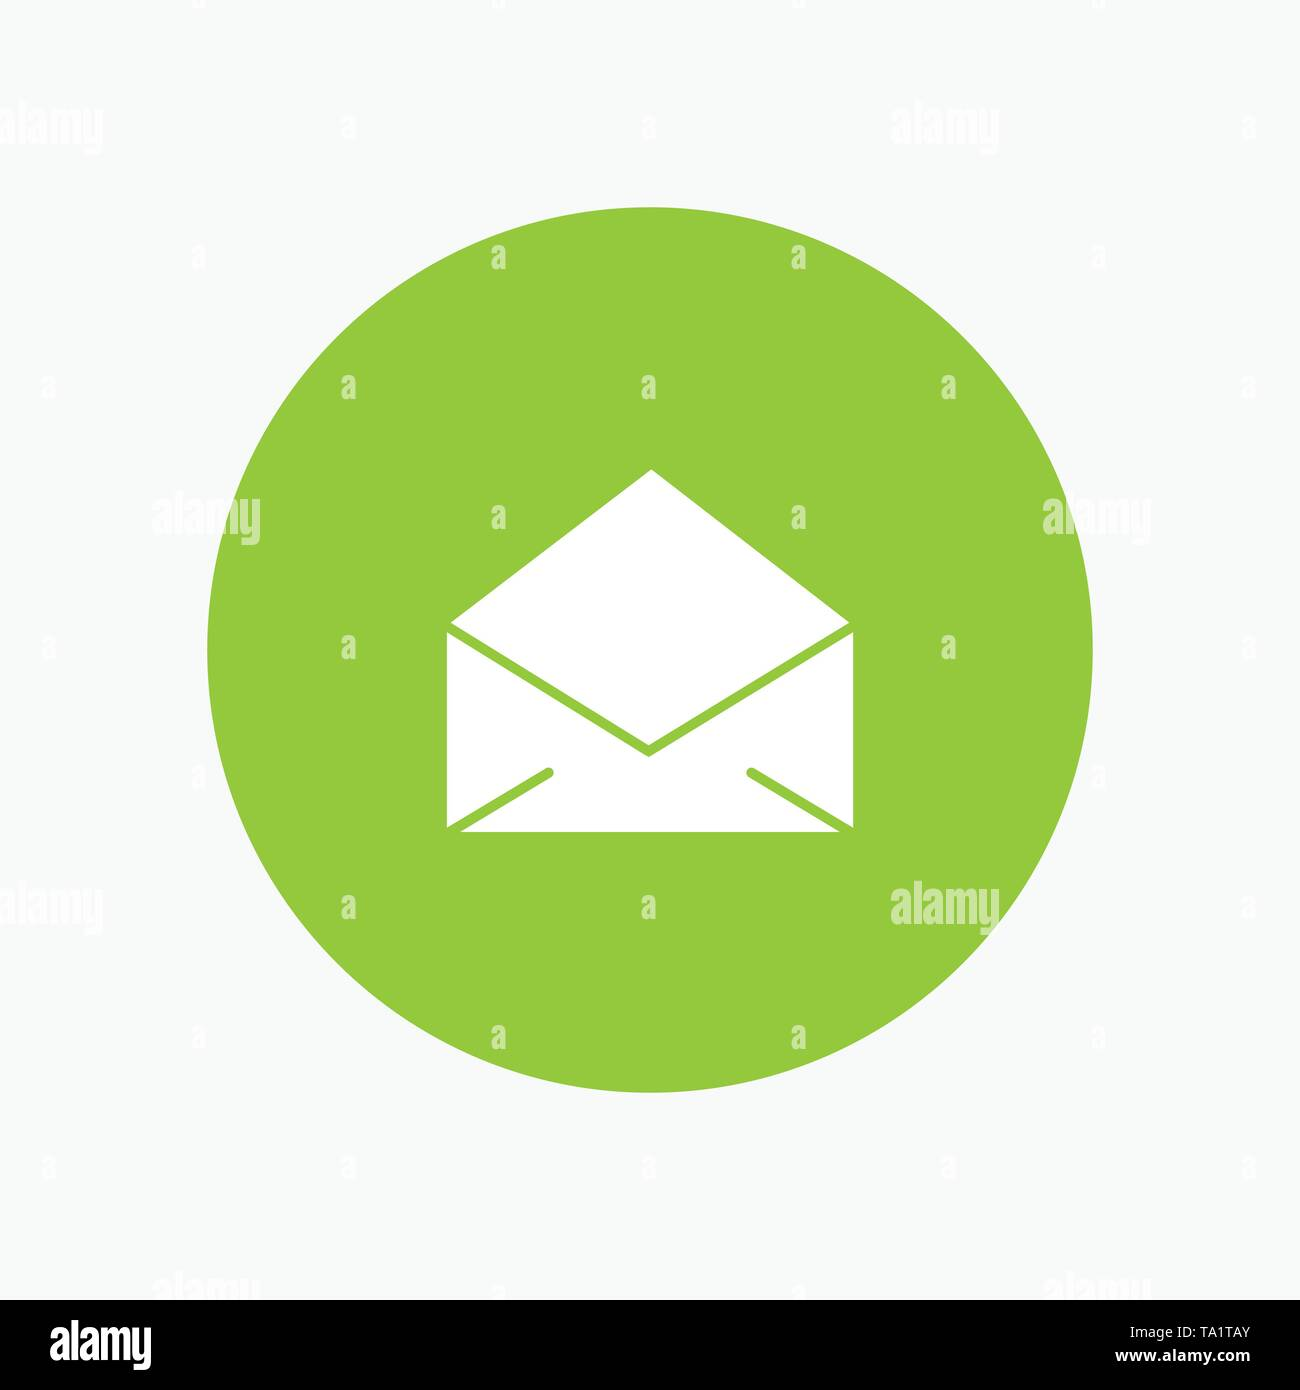 Email, Mail, Message, Open - Stock Image